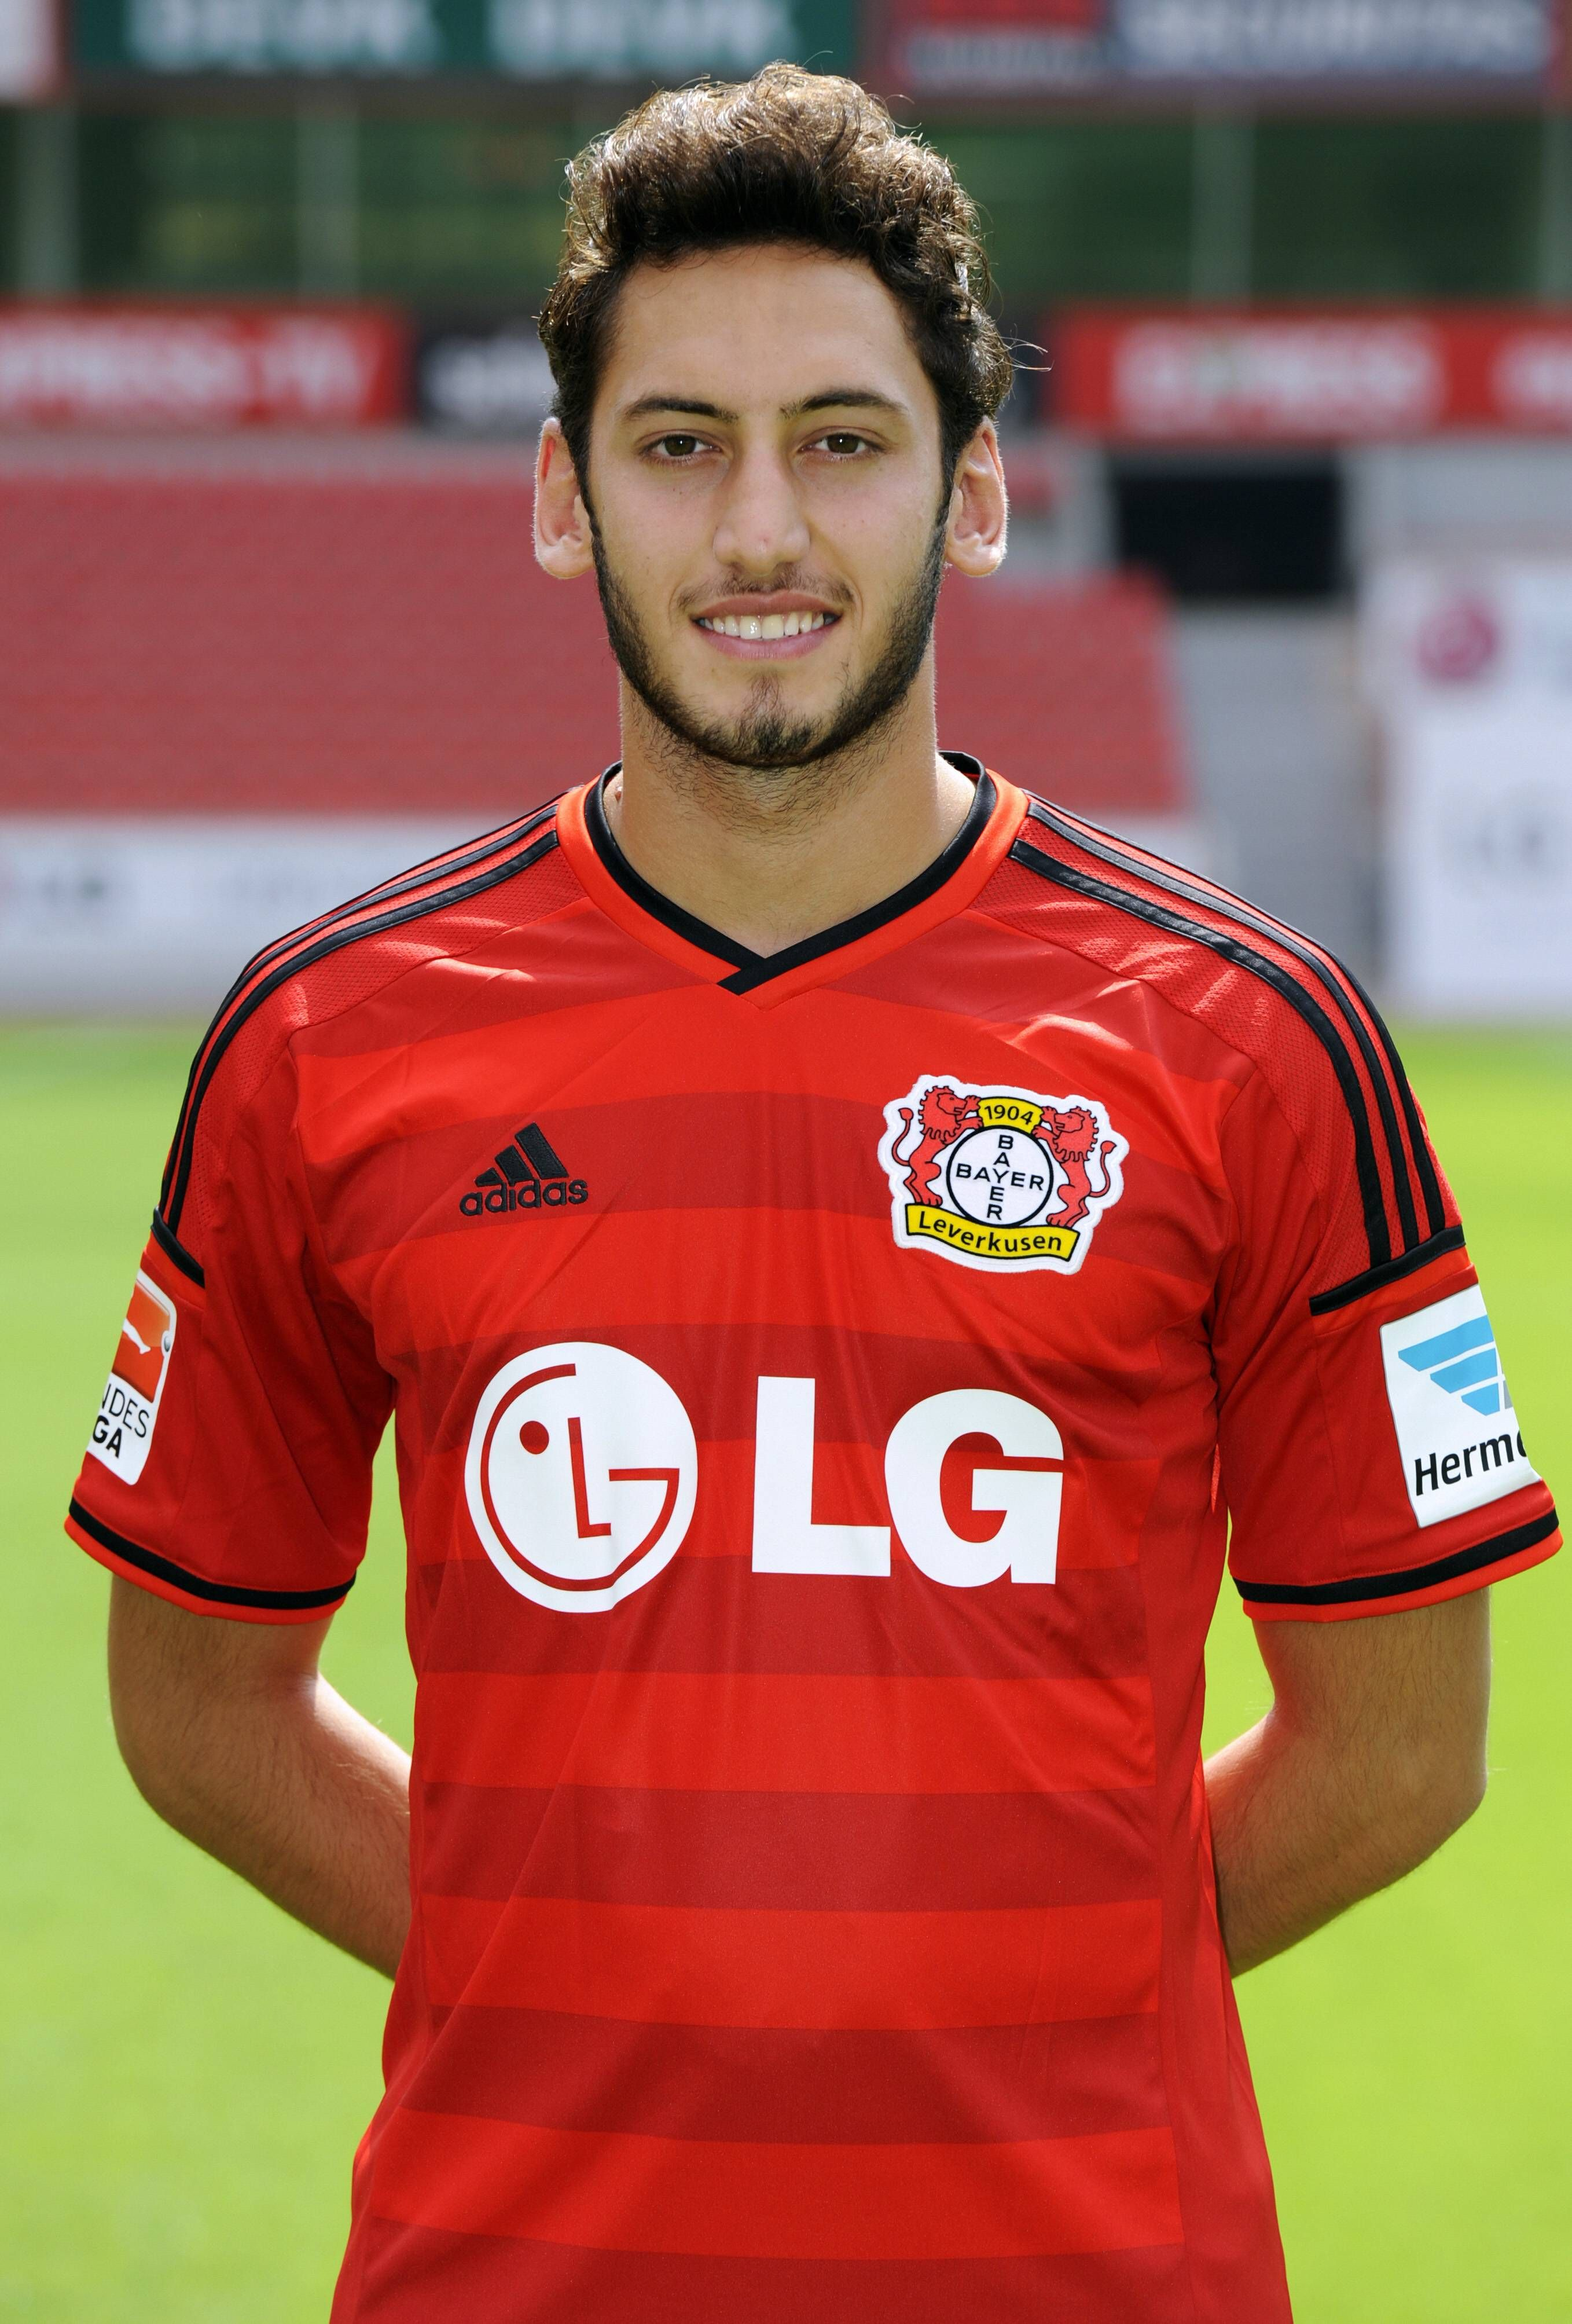 Hakan Çalhanoğlu with a weight of 69 kg and a feet size of 9.5 in favorite outfit & clothing style